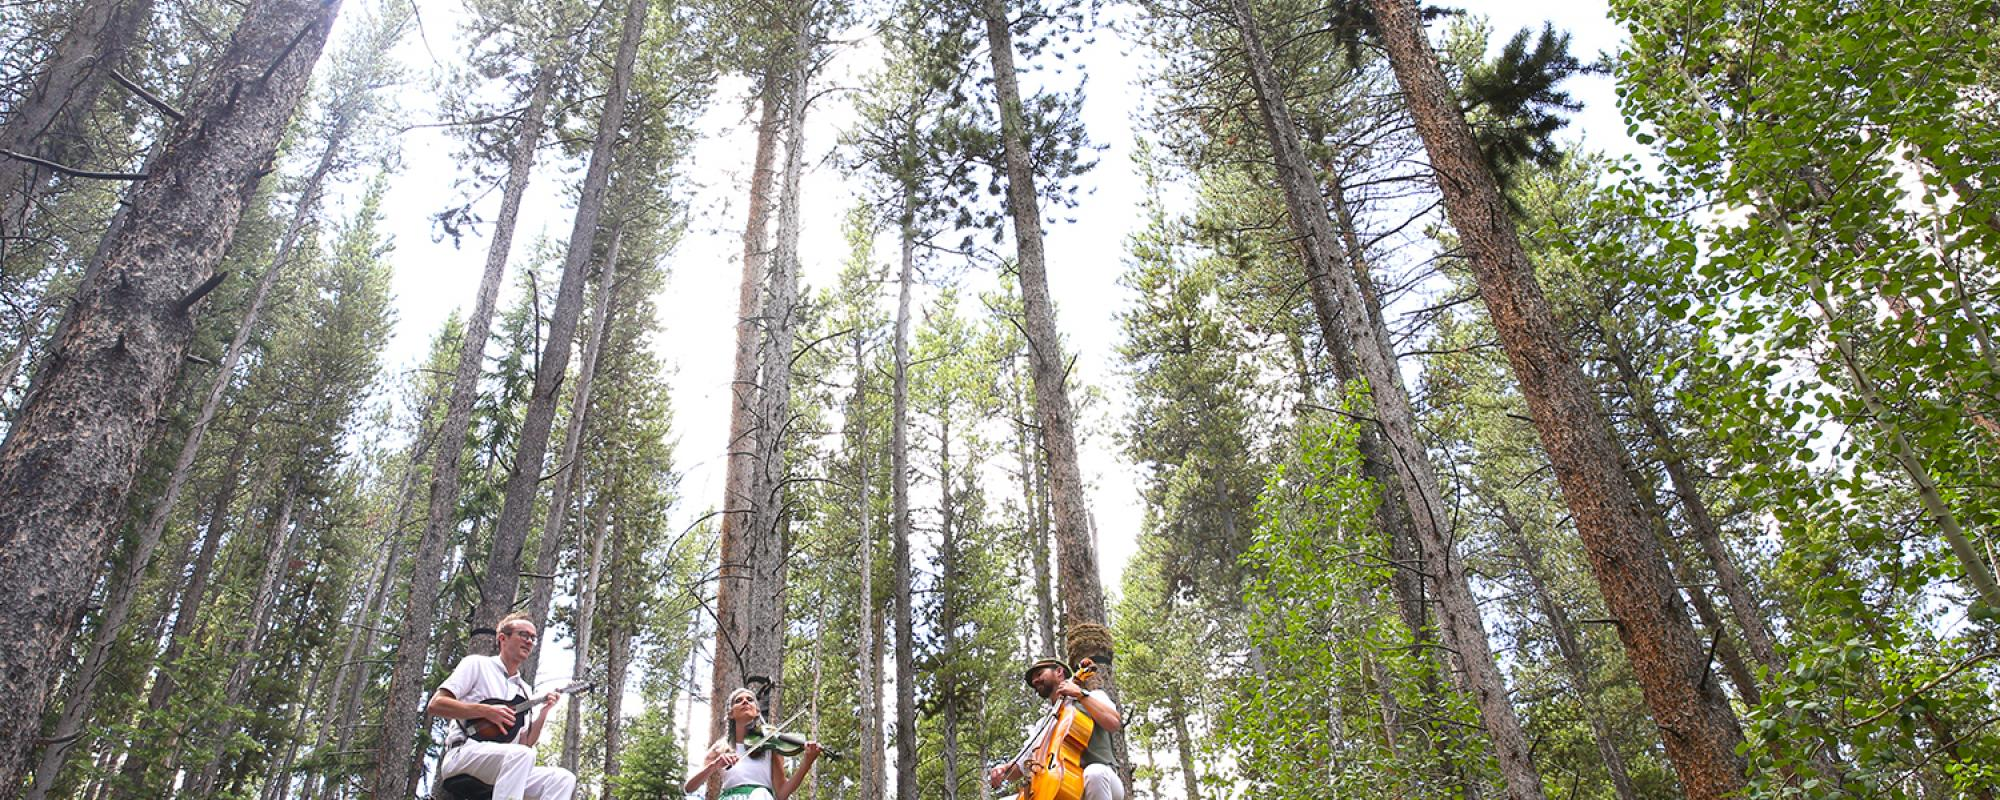 Musicians in the tress